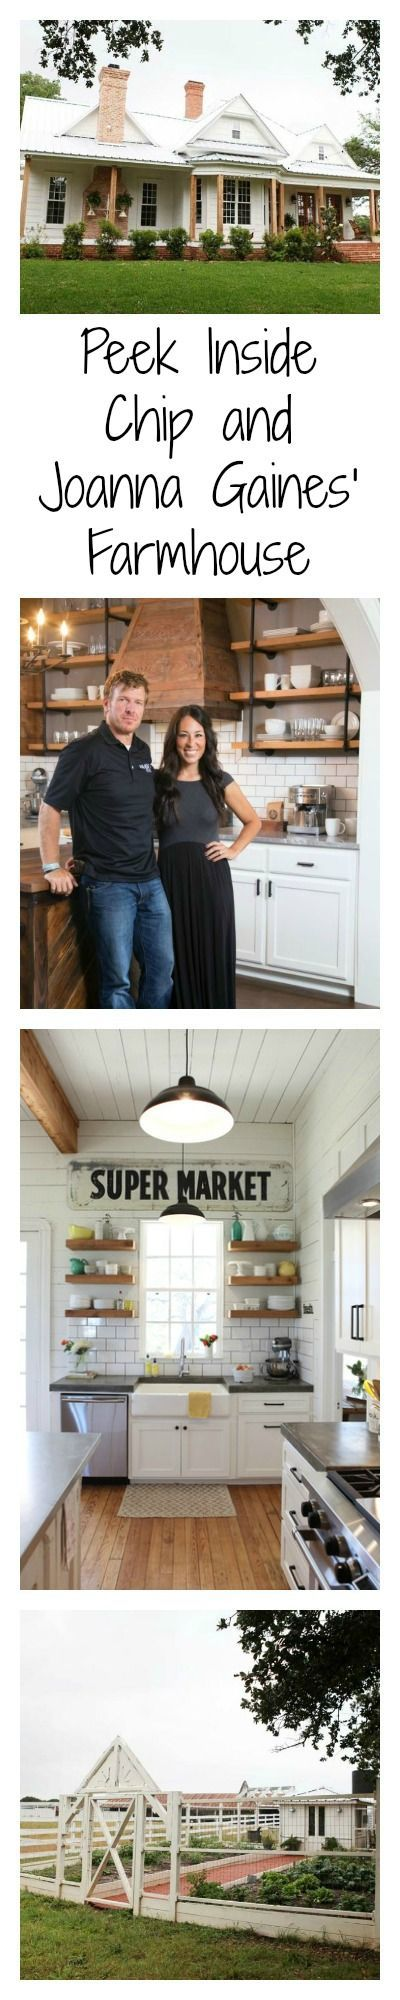 If you love Chip and Joanna Gaines as much as we do, seeing glimpses of their stunning farmhouse on HGTV's Fixer Upper, has most likely left you wanting more. Their 1,700-square-foot Victorian home sits on 40 beautiful acres in Crawford, Texas, a suburb of Waco.